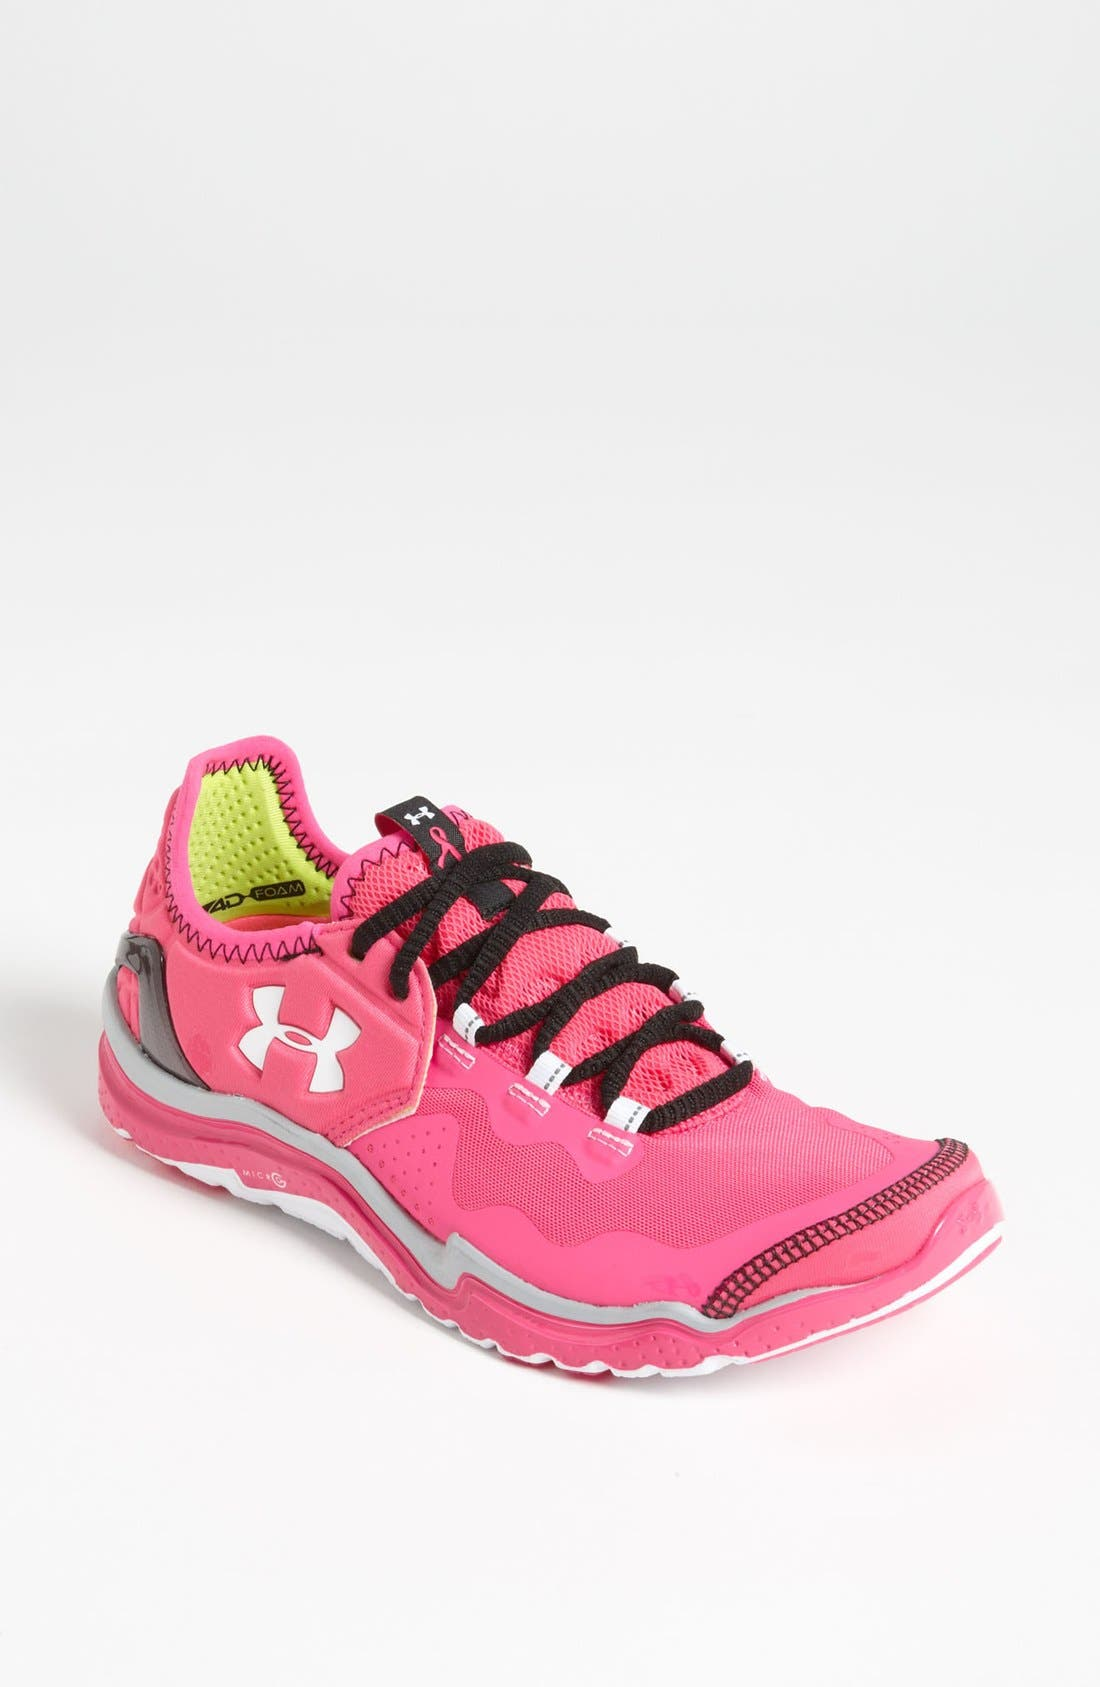 Main Image - Under Armour 'Charge RC 2 PIP' Running Shoe (Women)